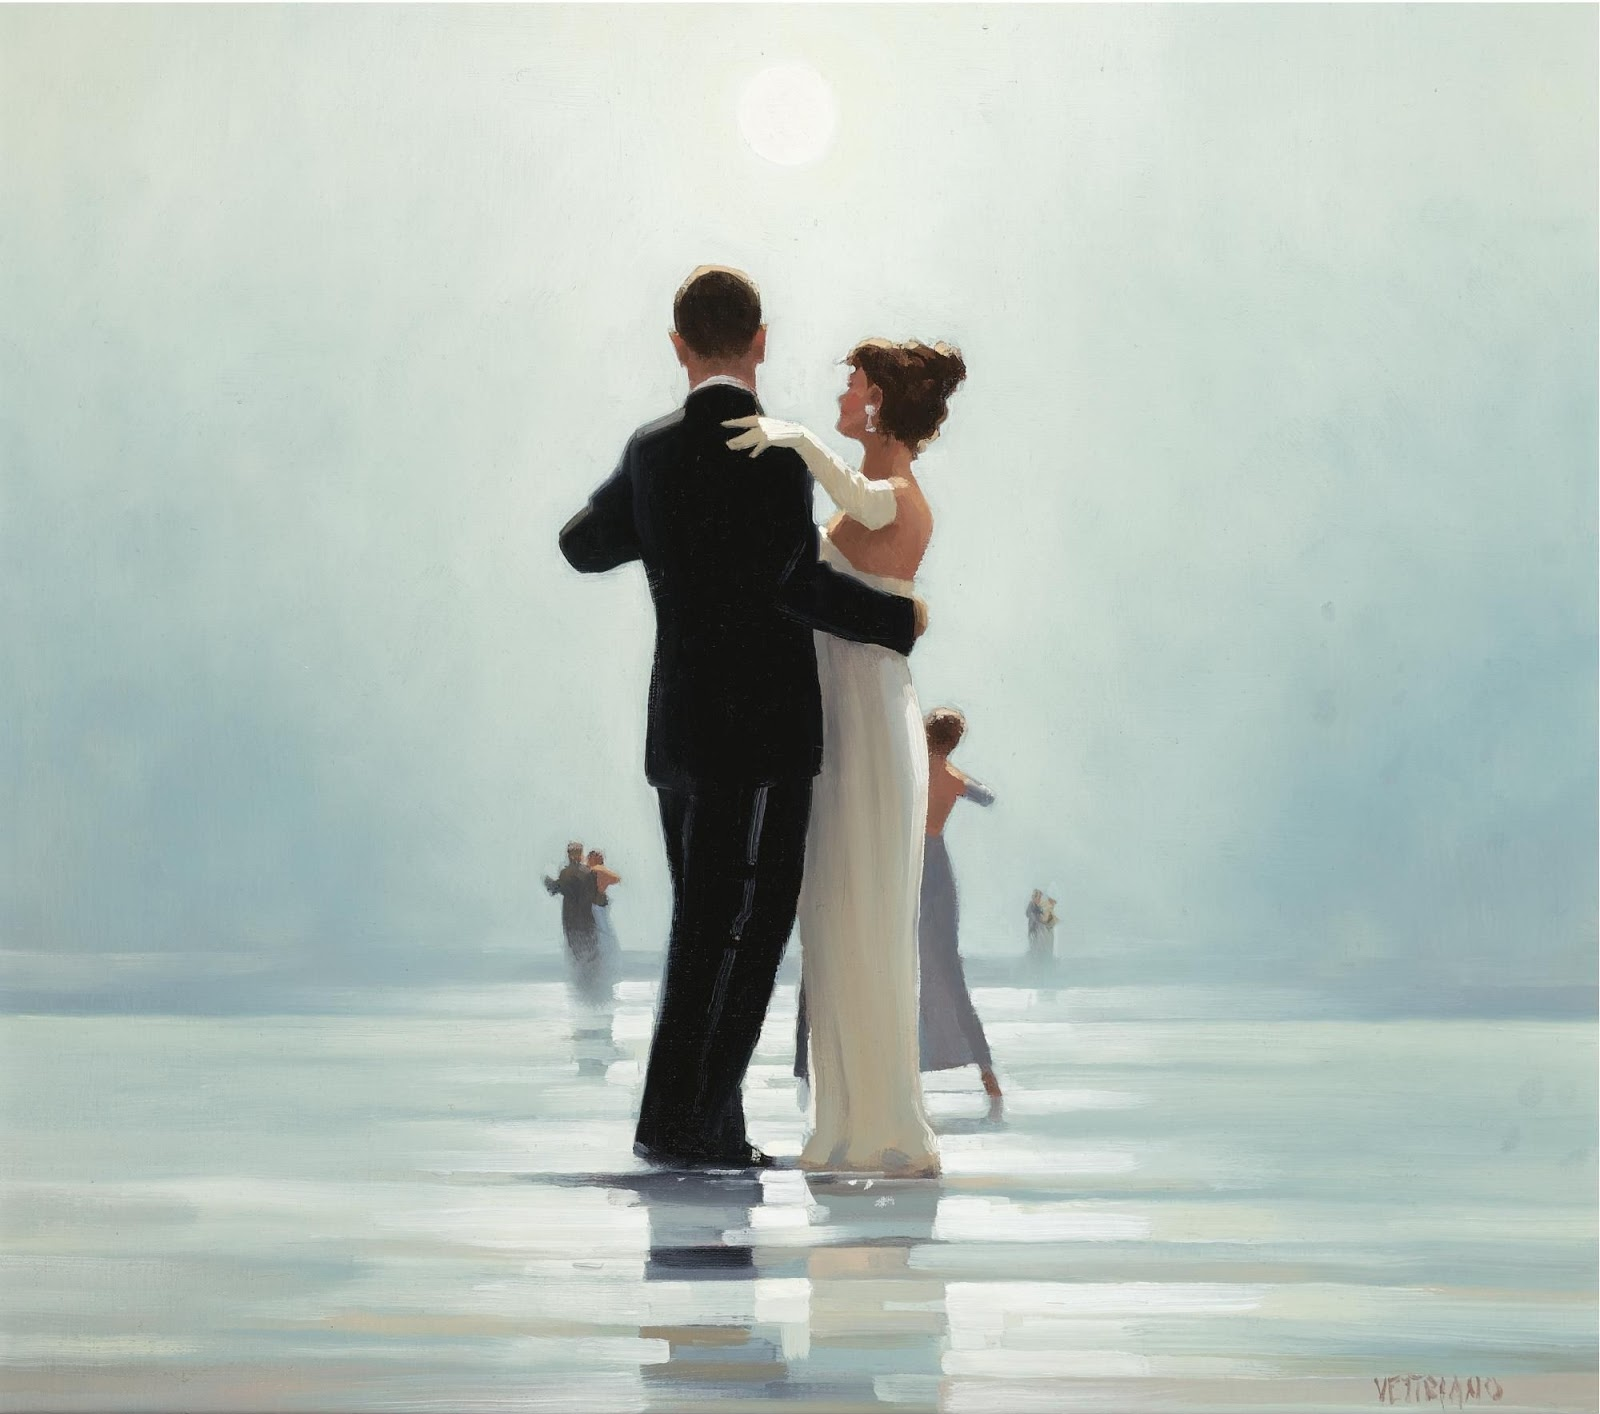 Jack+Vettriano+Dance+Me+To+The+End+Of+Lo